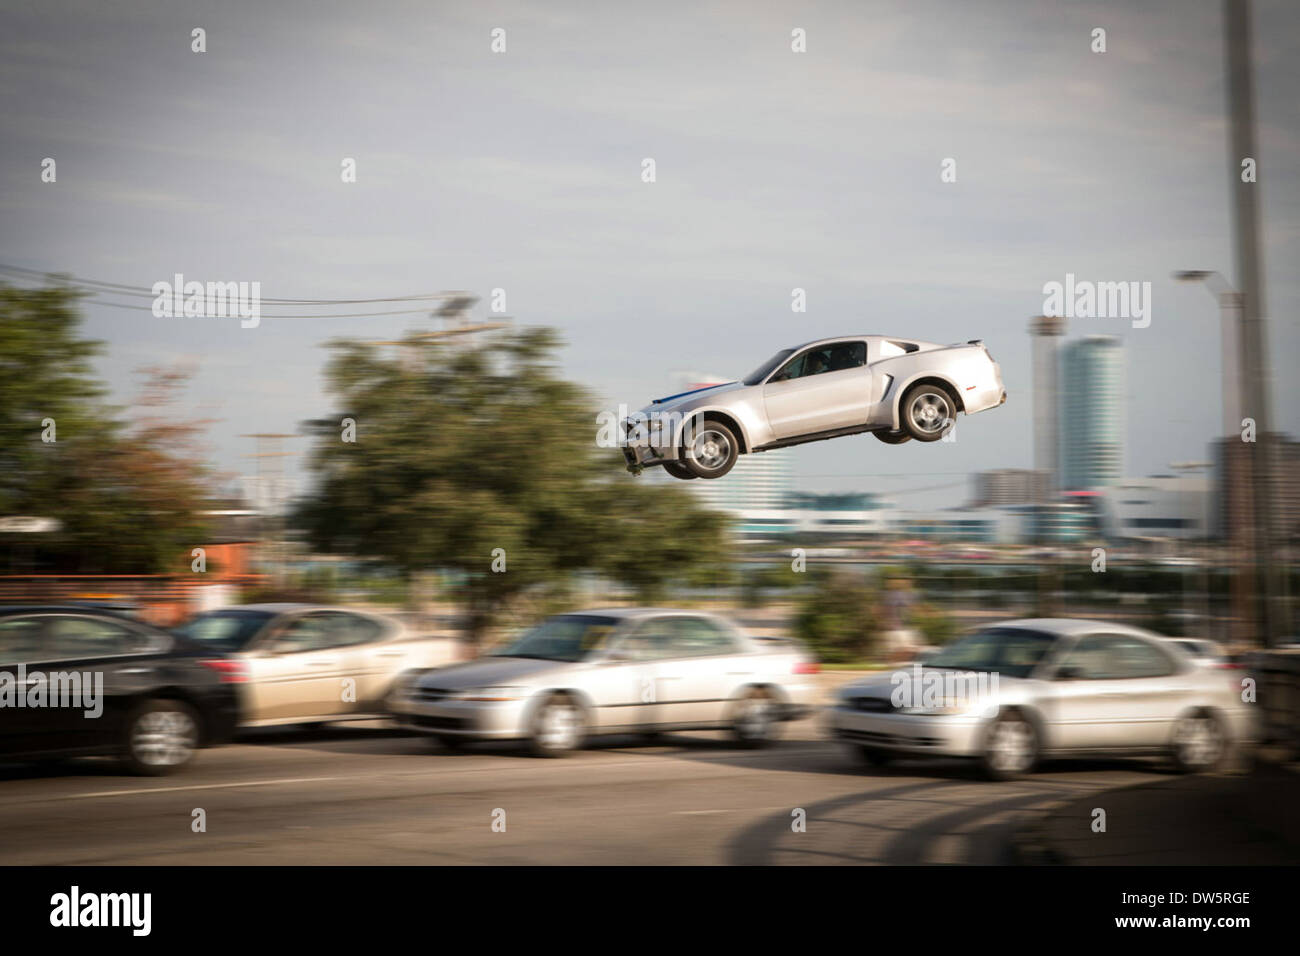 NEED FOR SPEED (2014) SCOTT WAUGH (DIR) MOVIESTORE COLLECTION LTD - Stock Image